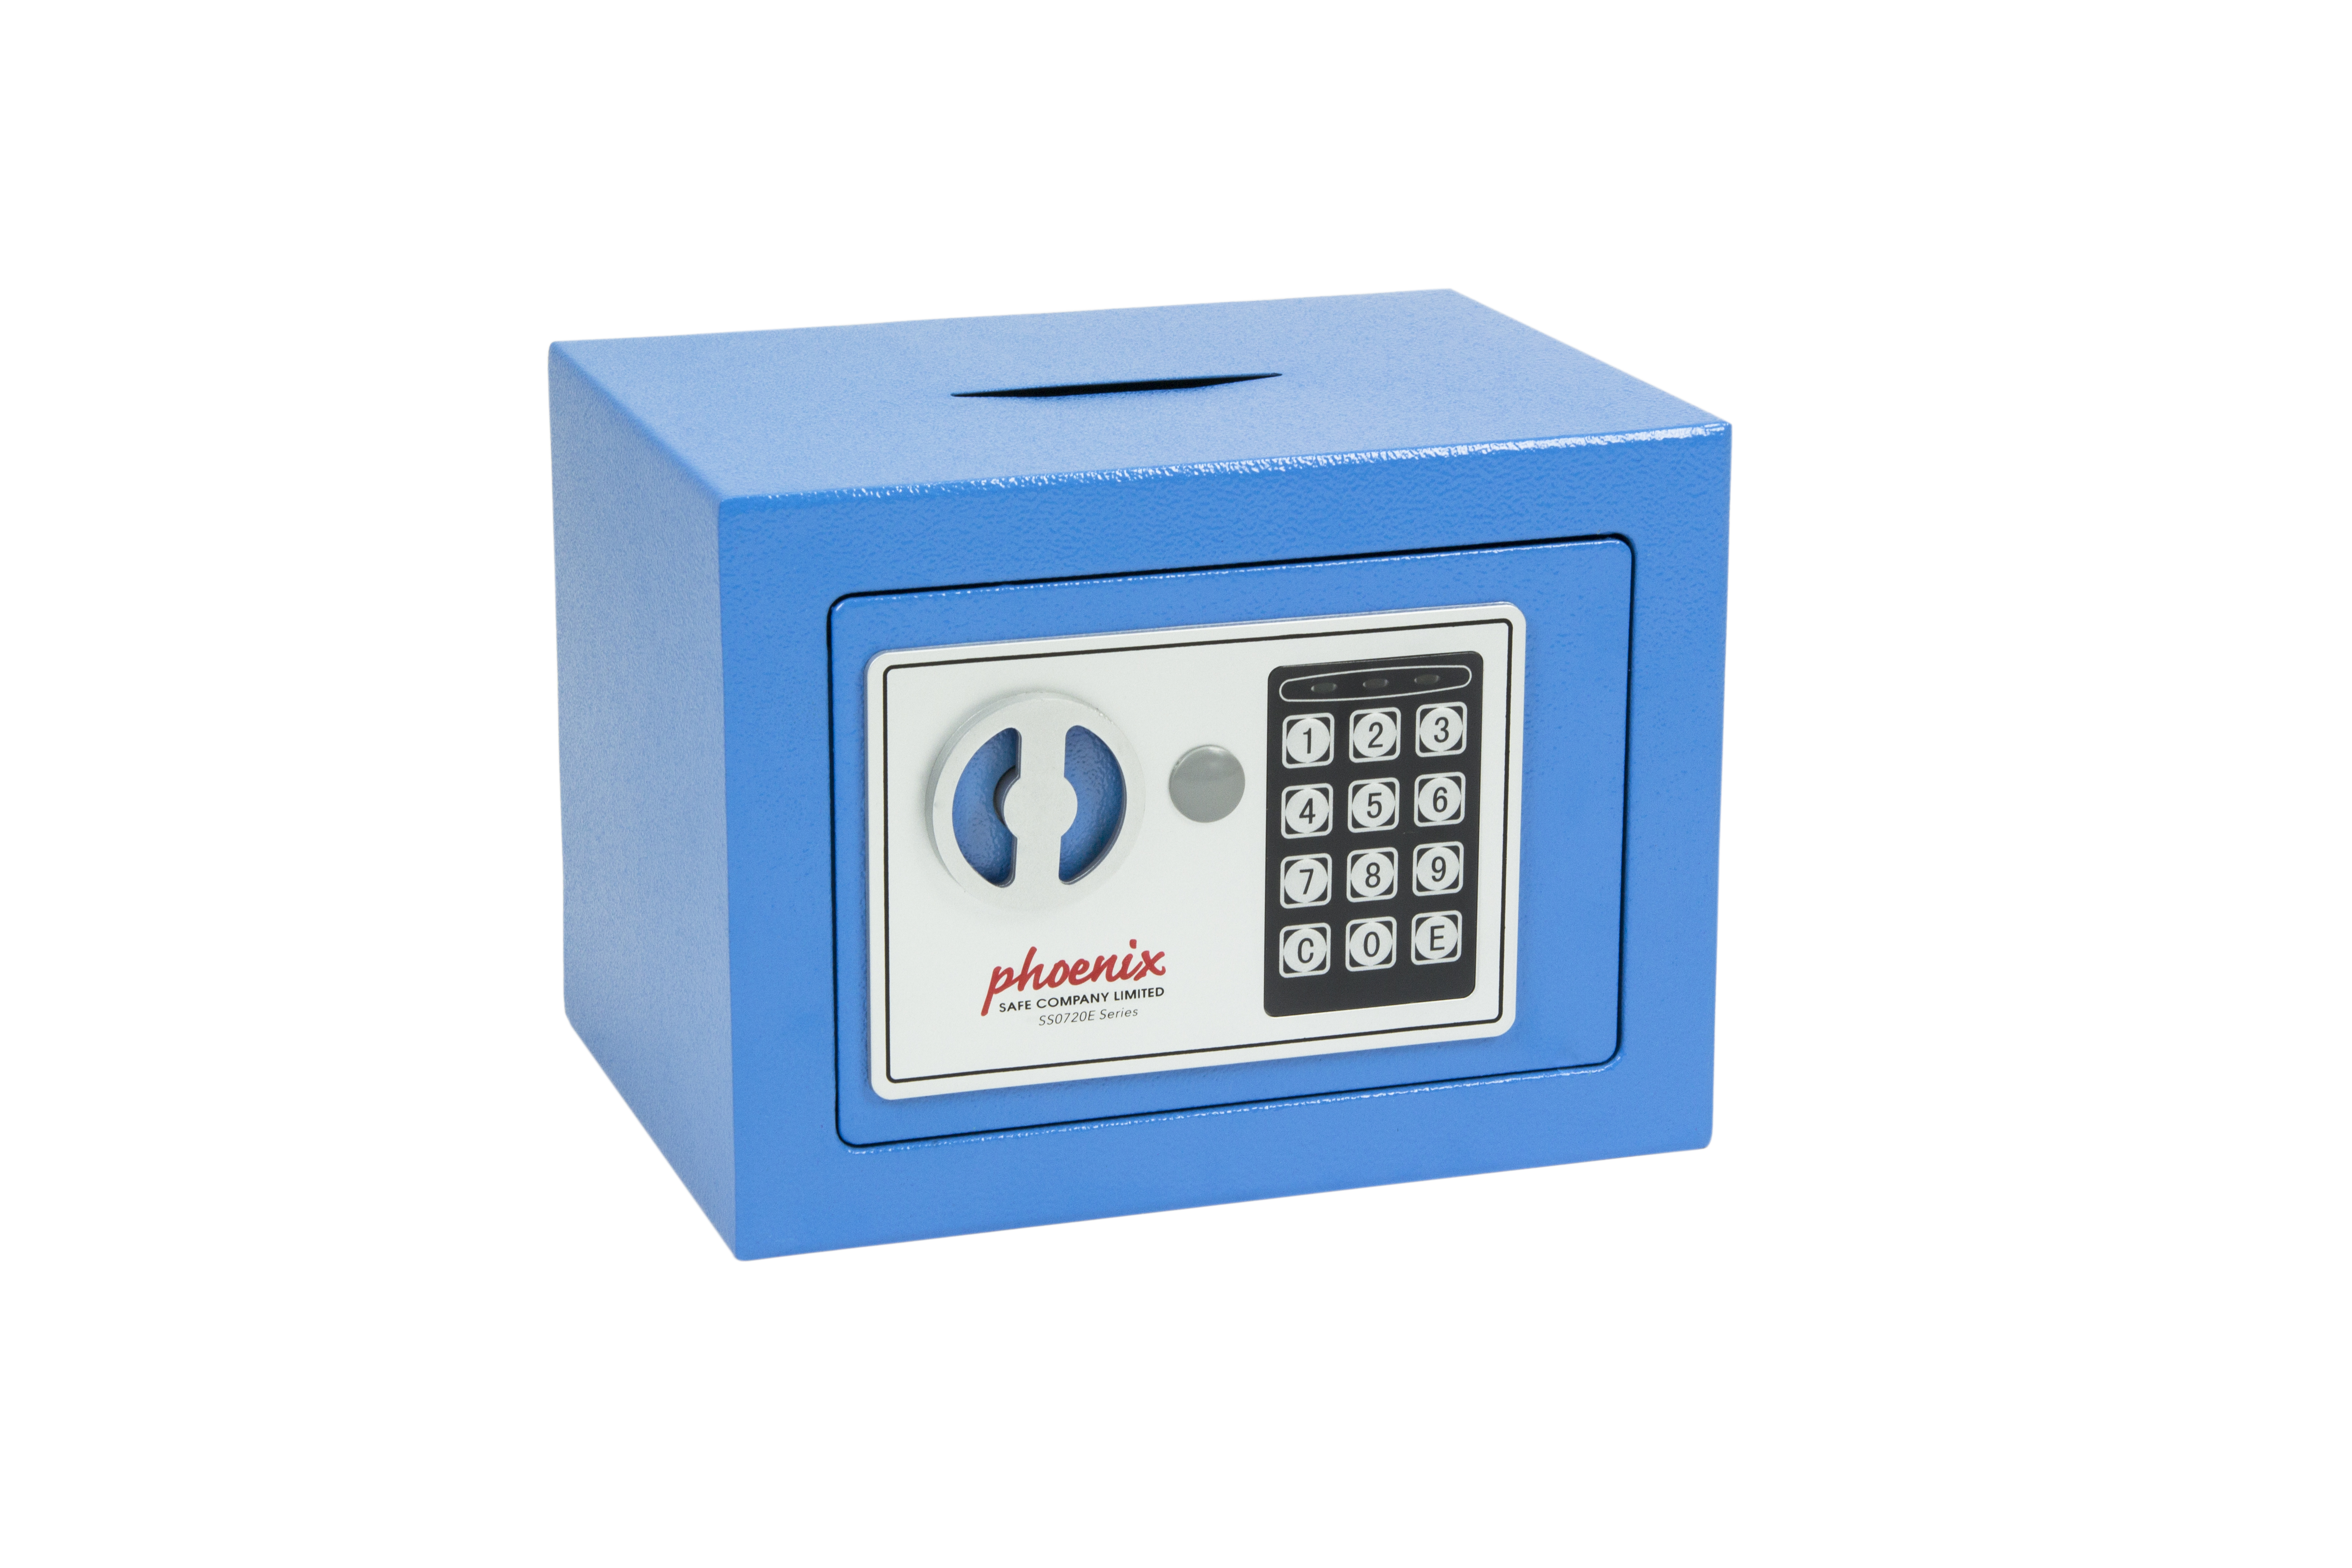 Phoenix Compact Home Security Safe Electronic Lock and Deposit Slot Blue SS0721EBD